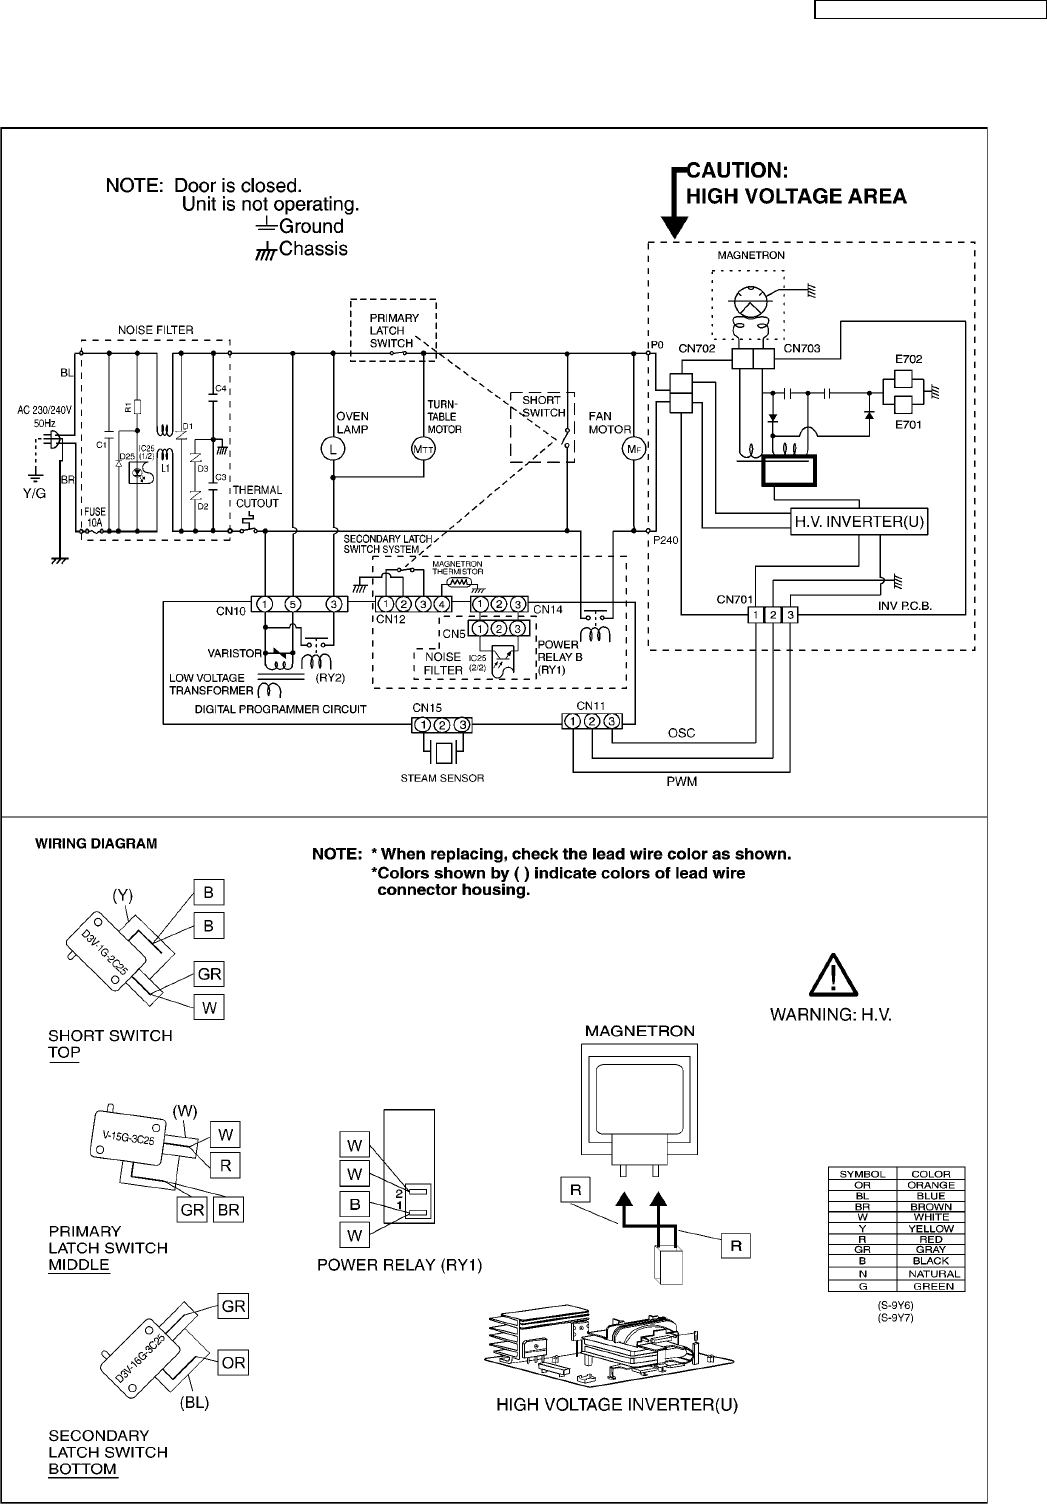 Panasonic Microwave Oven Circuit Diagram